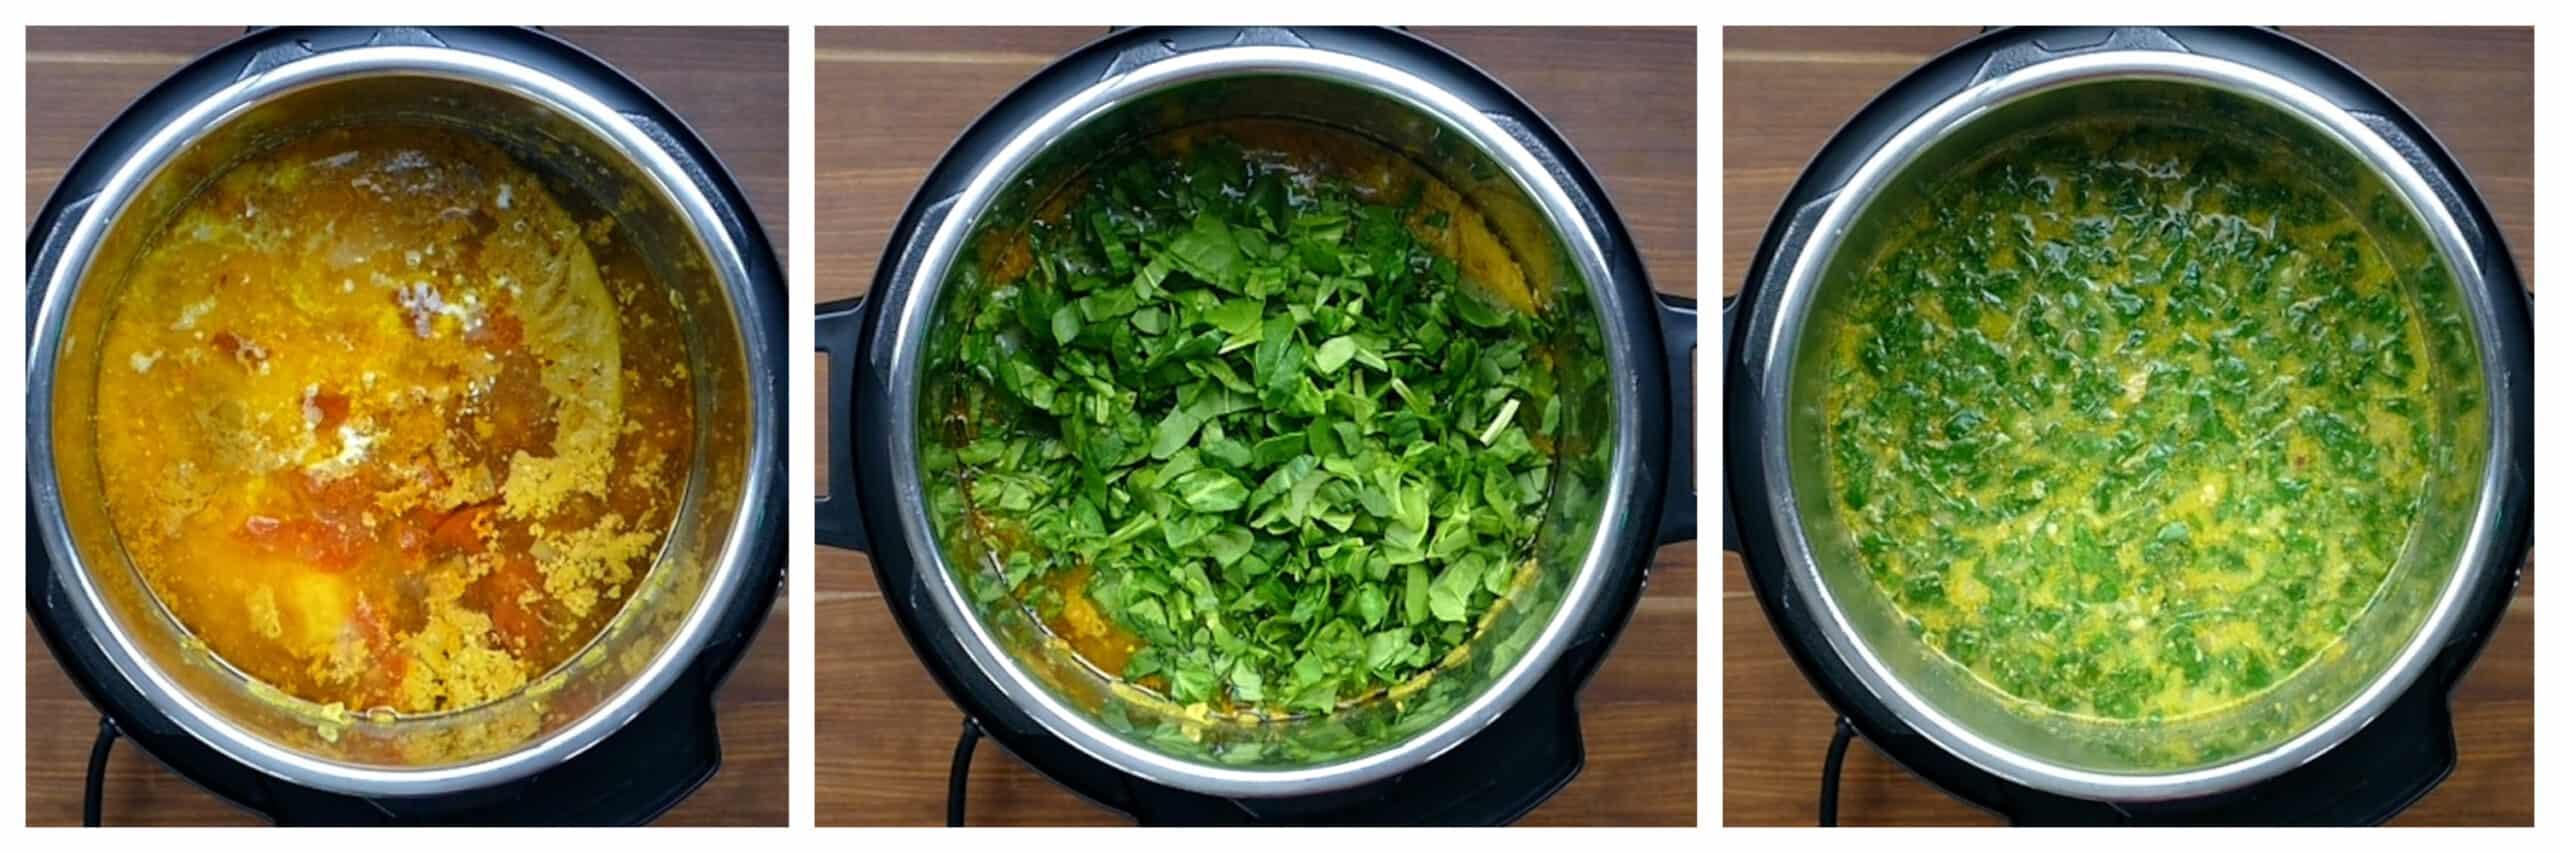 Instant Pot Chicken Curry Soup Instruction Collage - add coconut milk, add spinach, stirred